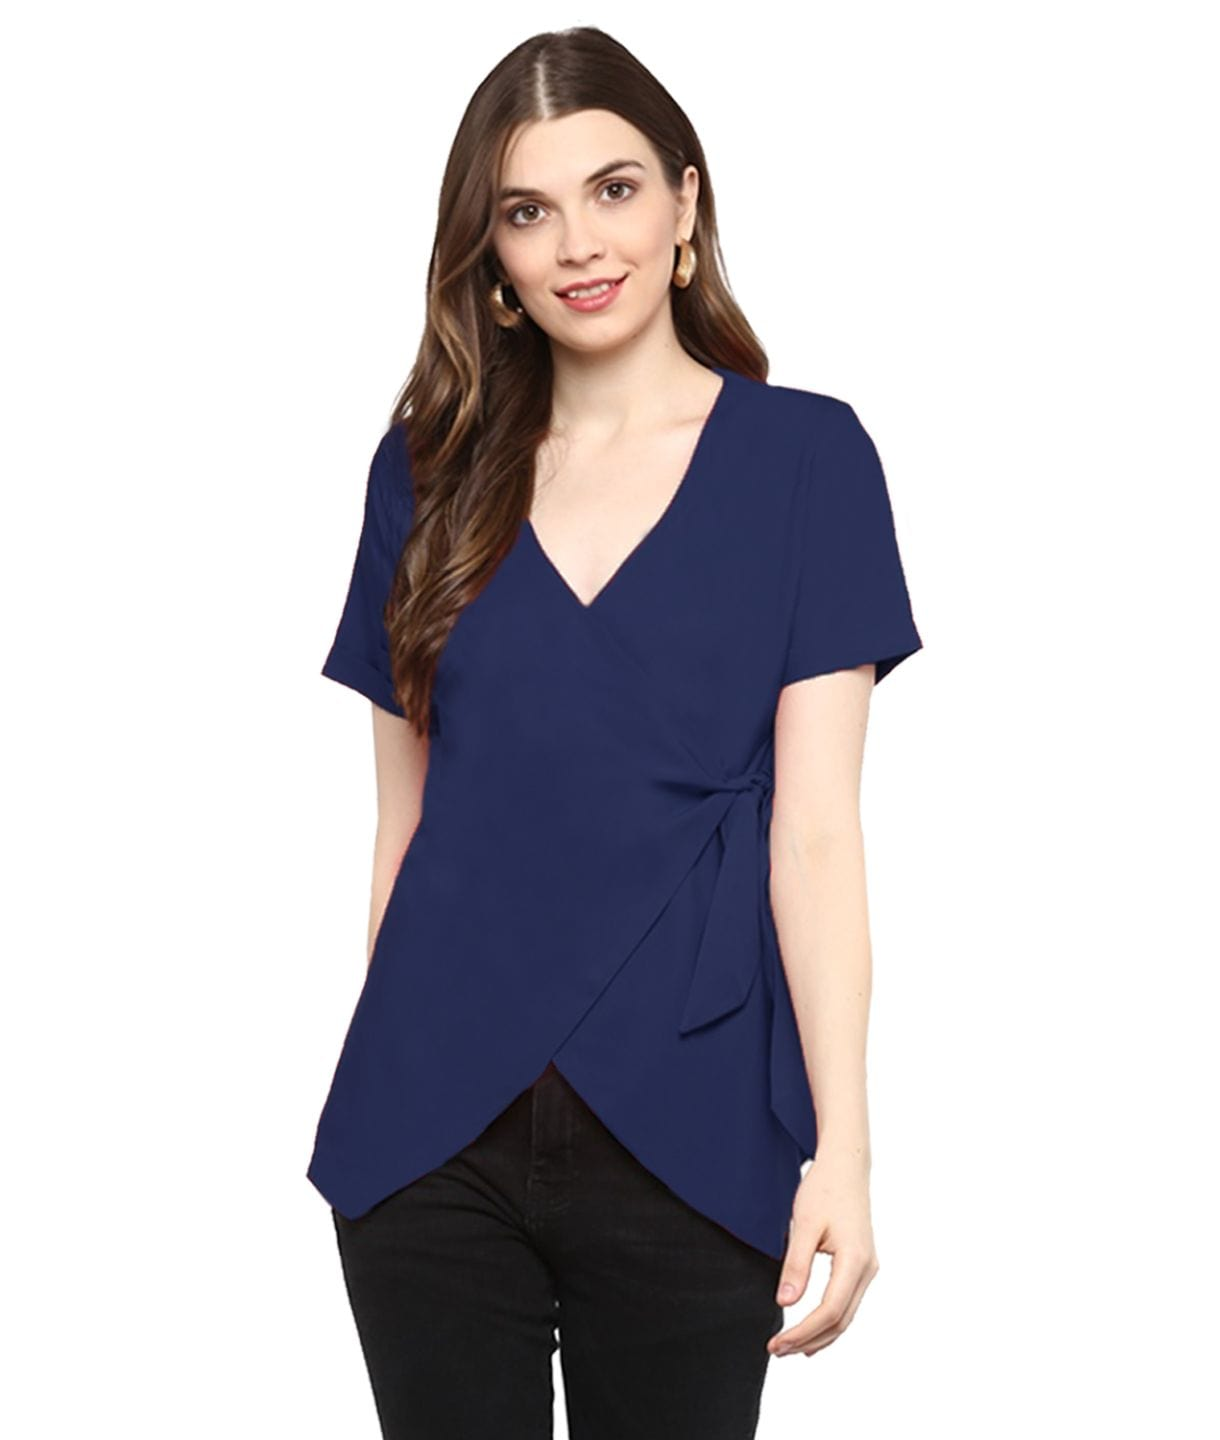 Navy Blue Solid Crepe Wrap Maternity Top